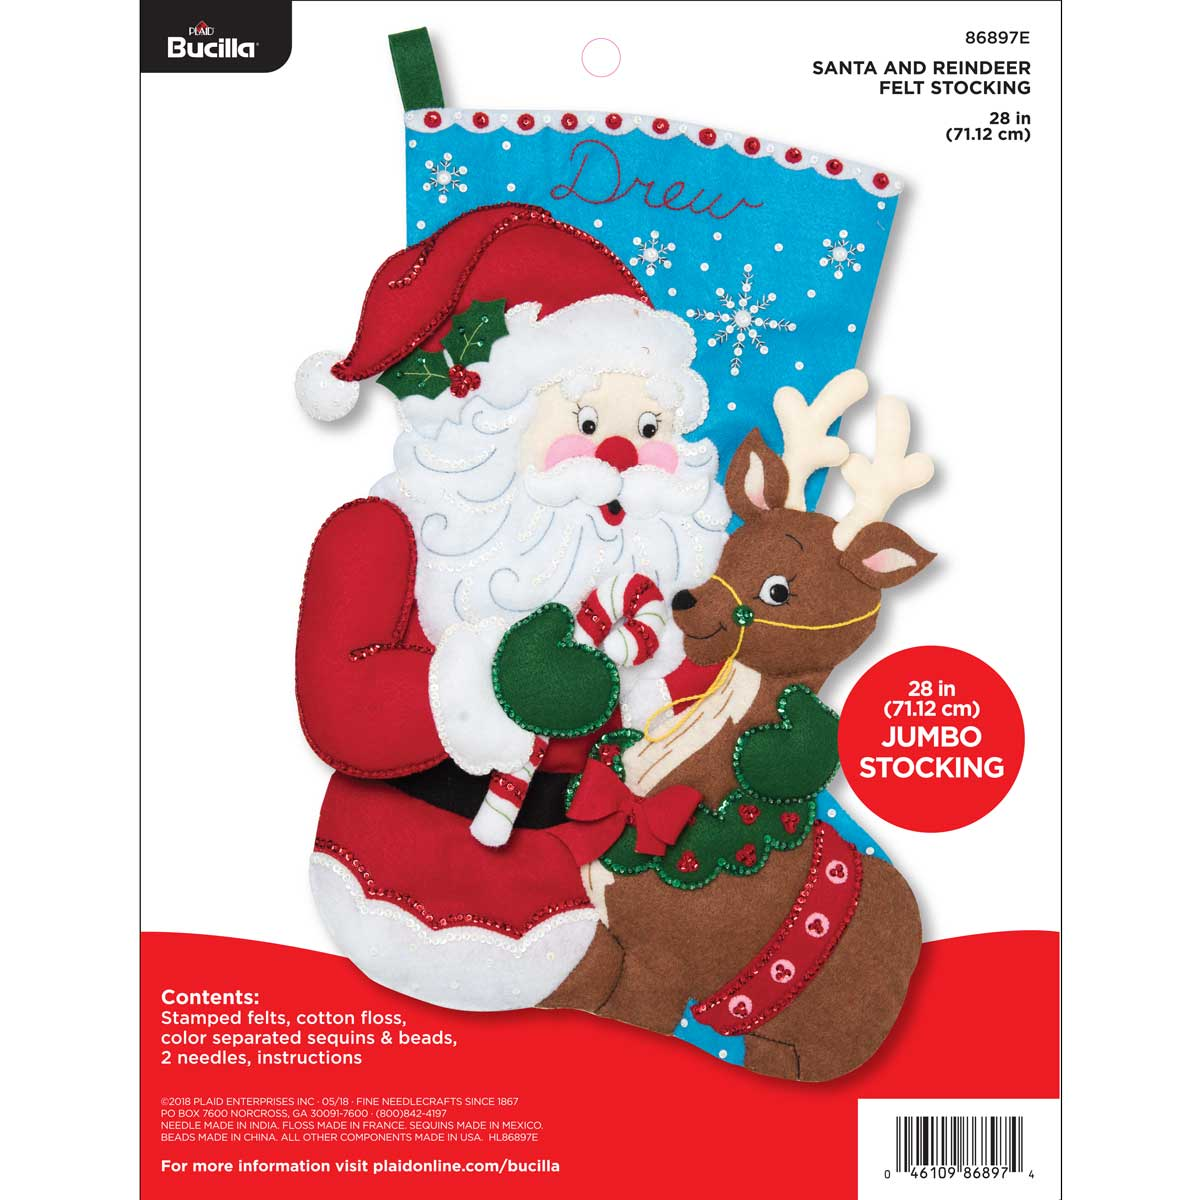 Bucilla ® Seasonal - Felt - Stocking Kits - Santa and Reindeer Jumbo Stocking